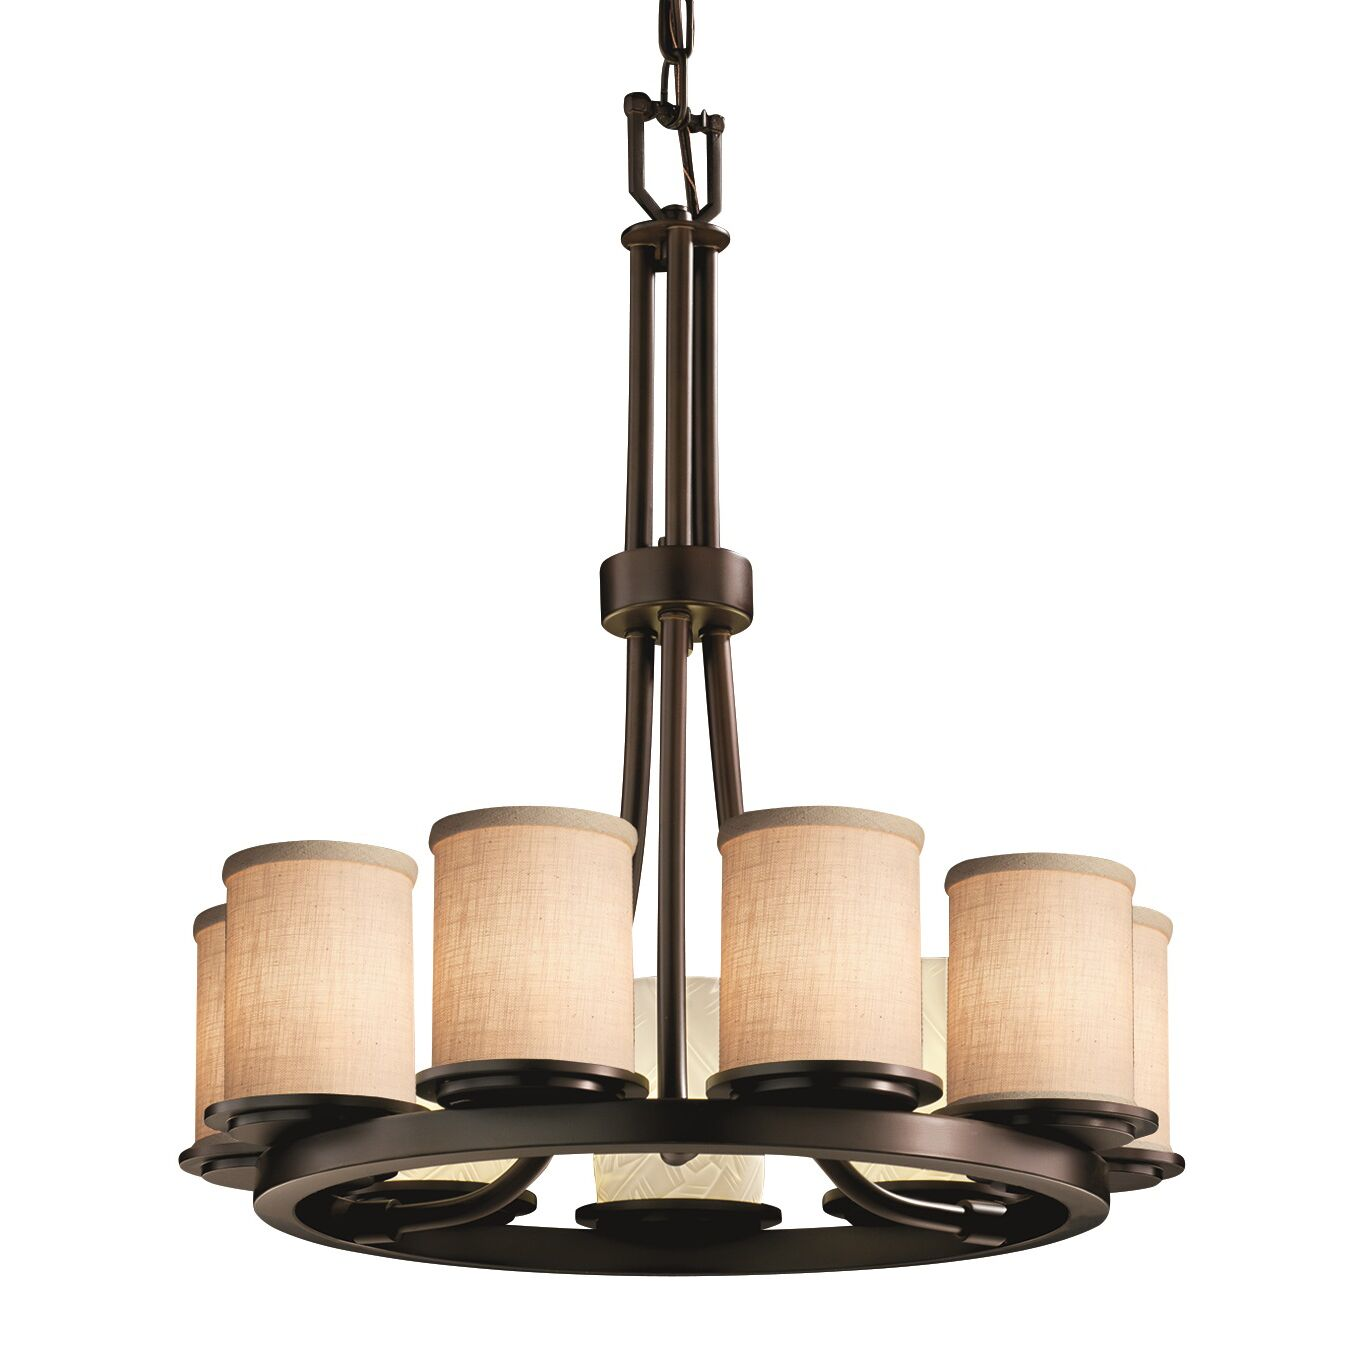 Red Hook 9 Light Cylinder w/ Flat Rim Chandelier Finish: Dark Bronze, Shade Color: Cream